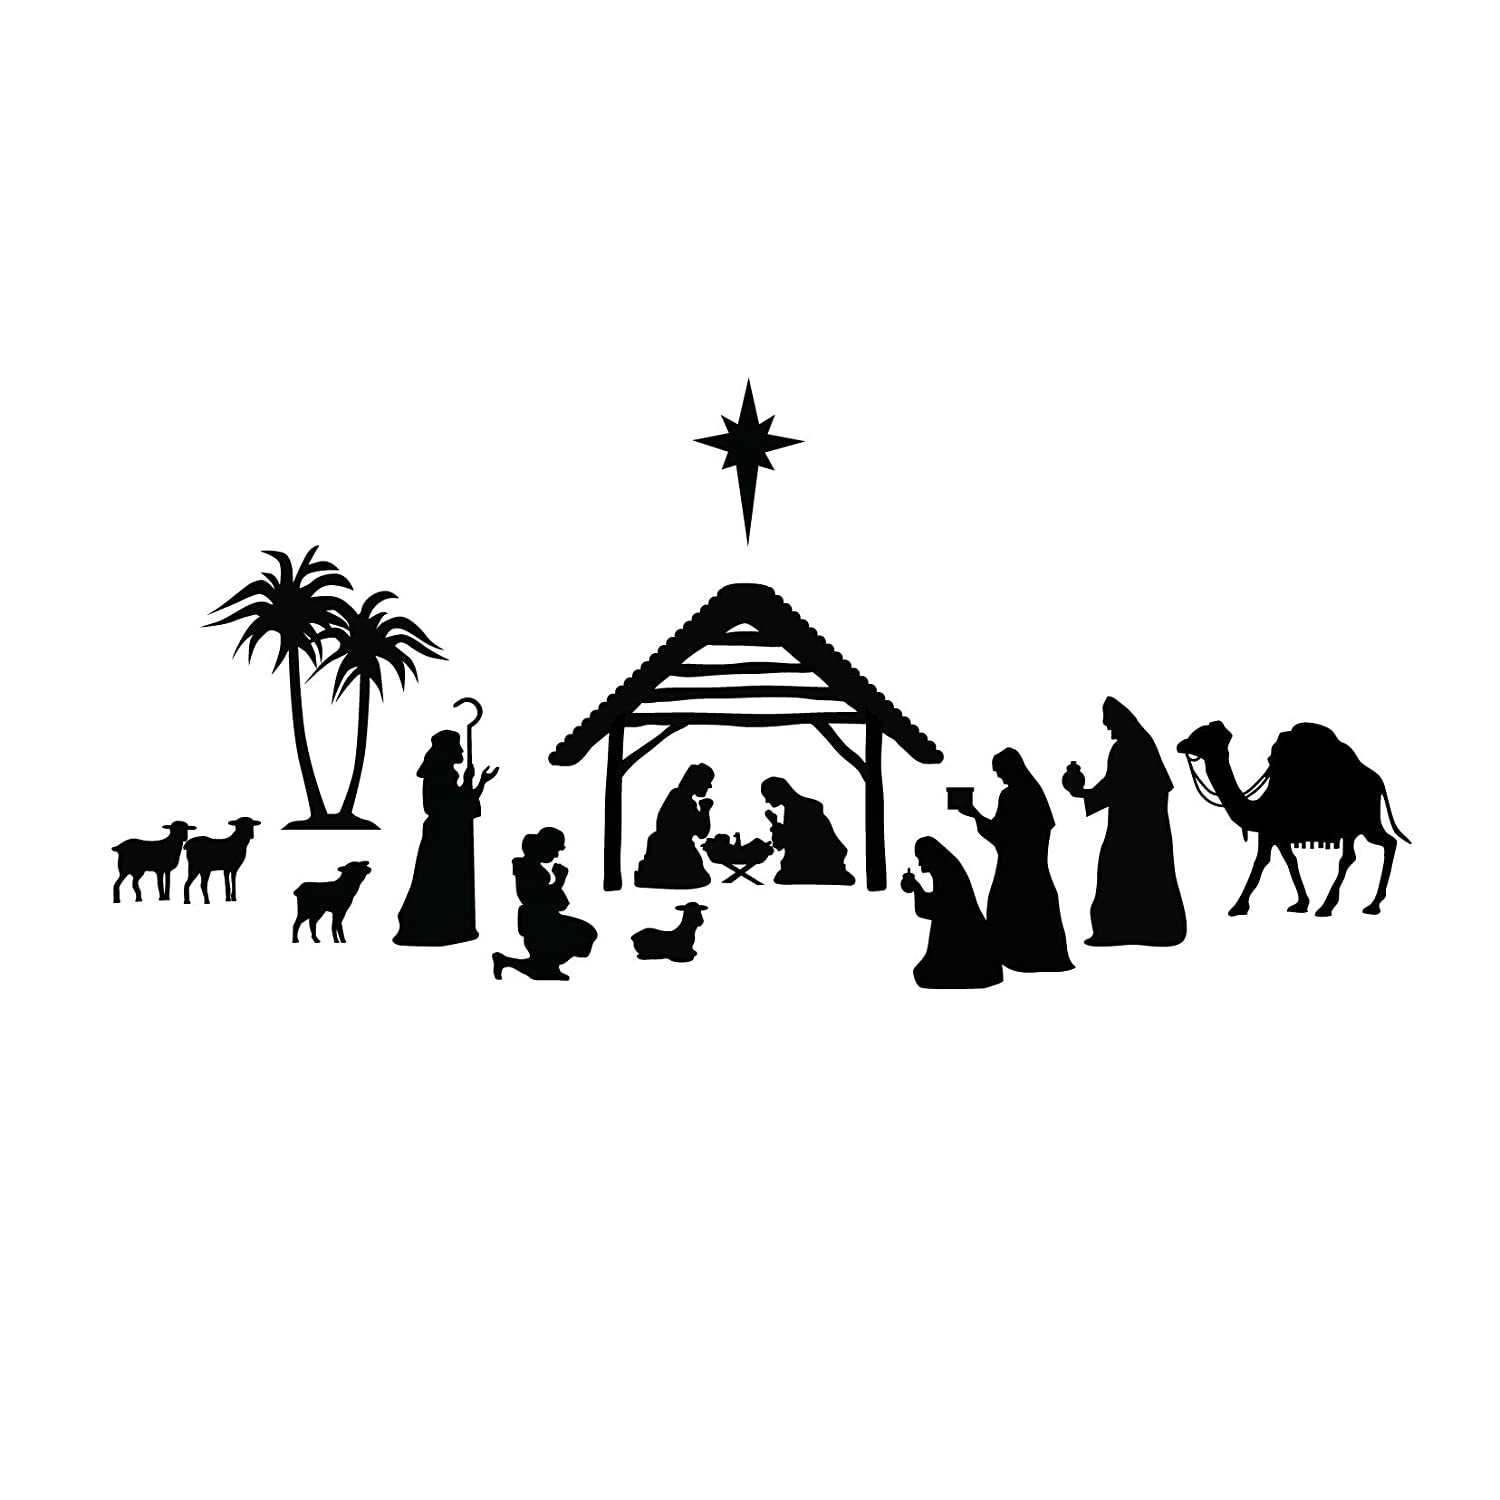 Nativity Scene Silhouette Christmas Nativity Silhouette